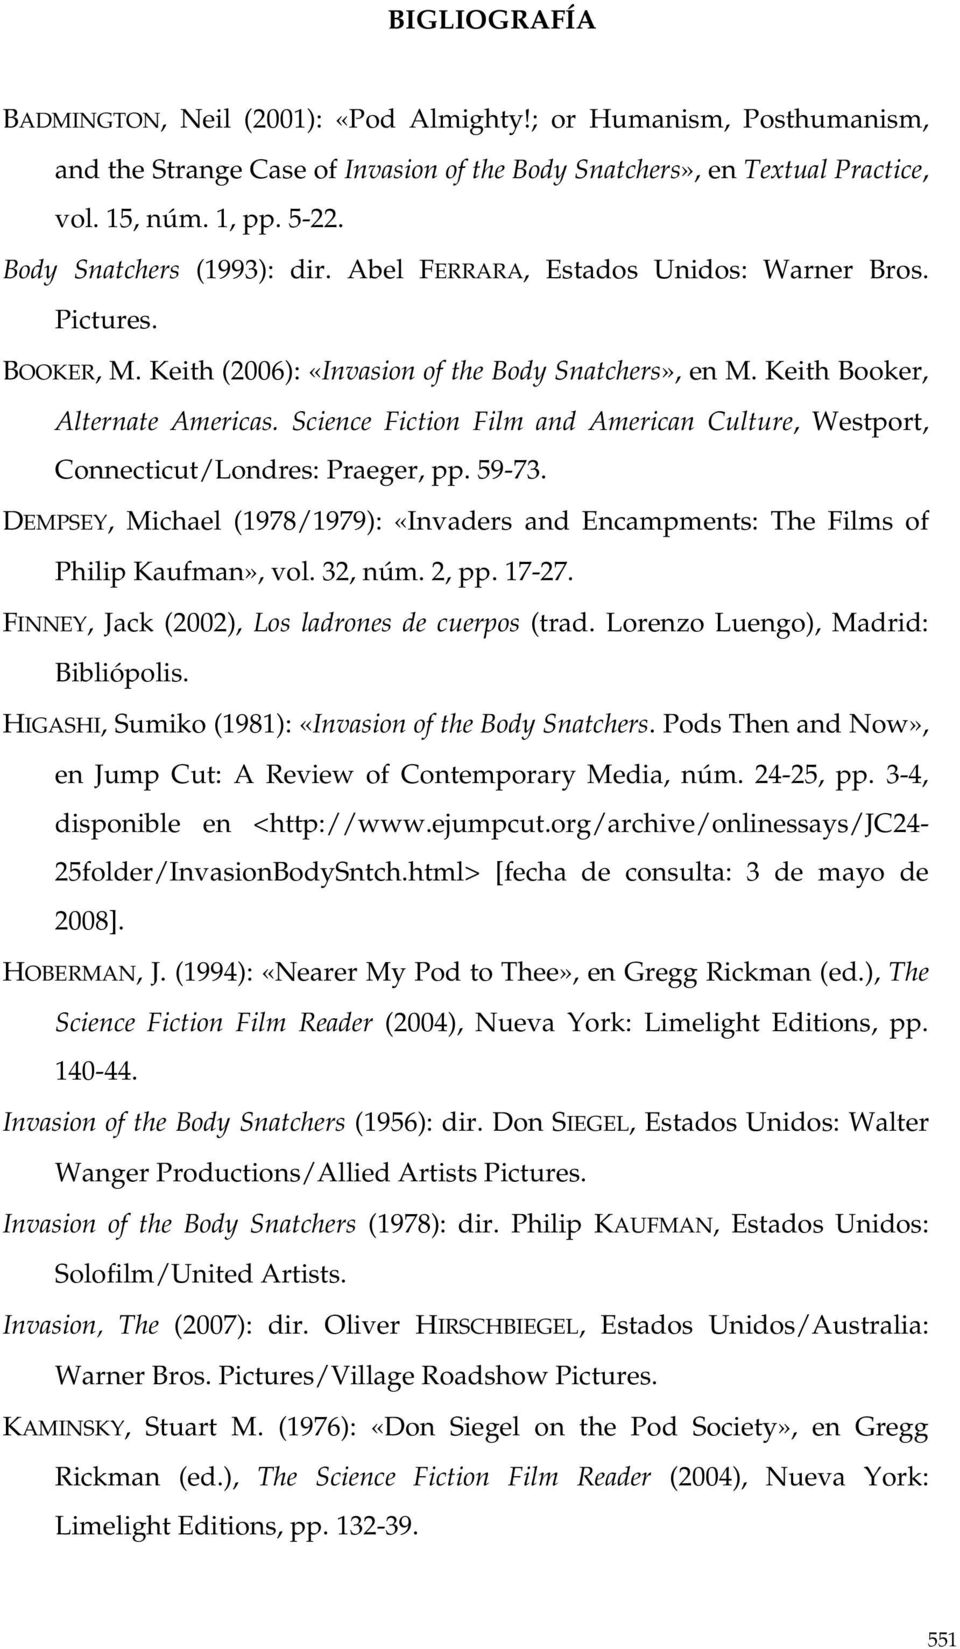 Science Fiction Film and American Culture, Westport, Connecticut/Londres: Praeger, pp. 59-73. DEMPSEY, Michael (1978/1979): «Invaders and Encampments: The Films of Philip Kaufman», vol. 32, núm.